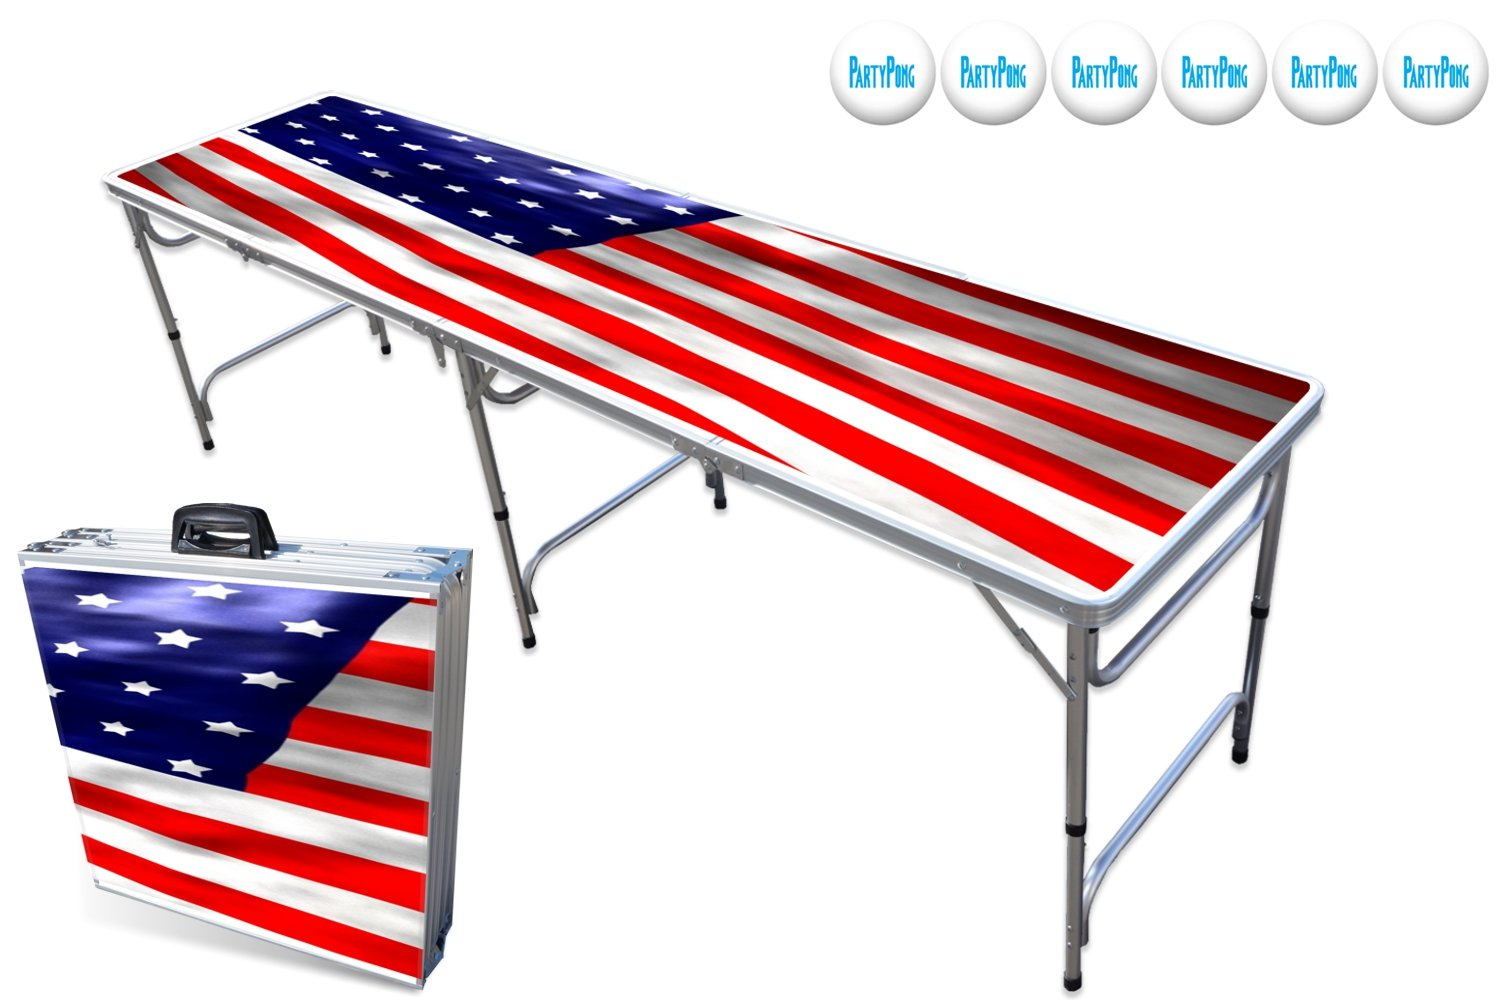 PartyPongTables.com 8-Foot Professional Beer Pong Table - USA Edition